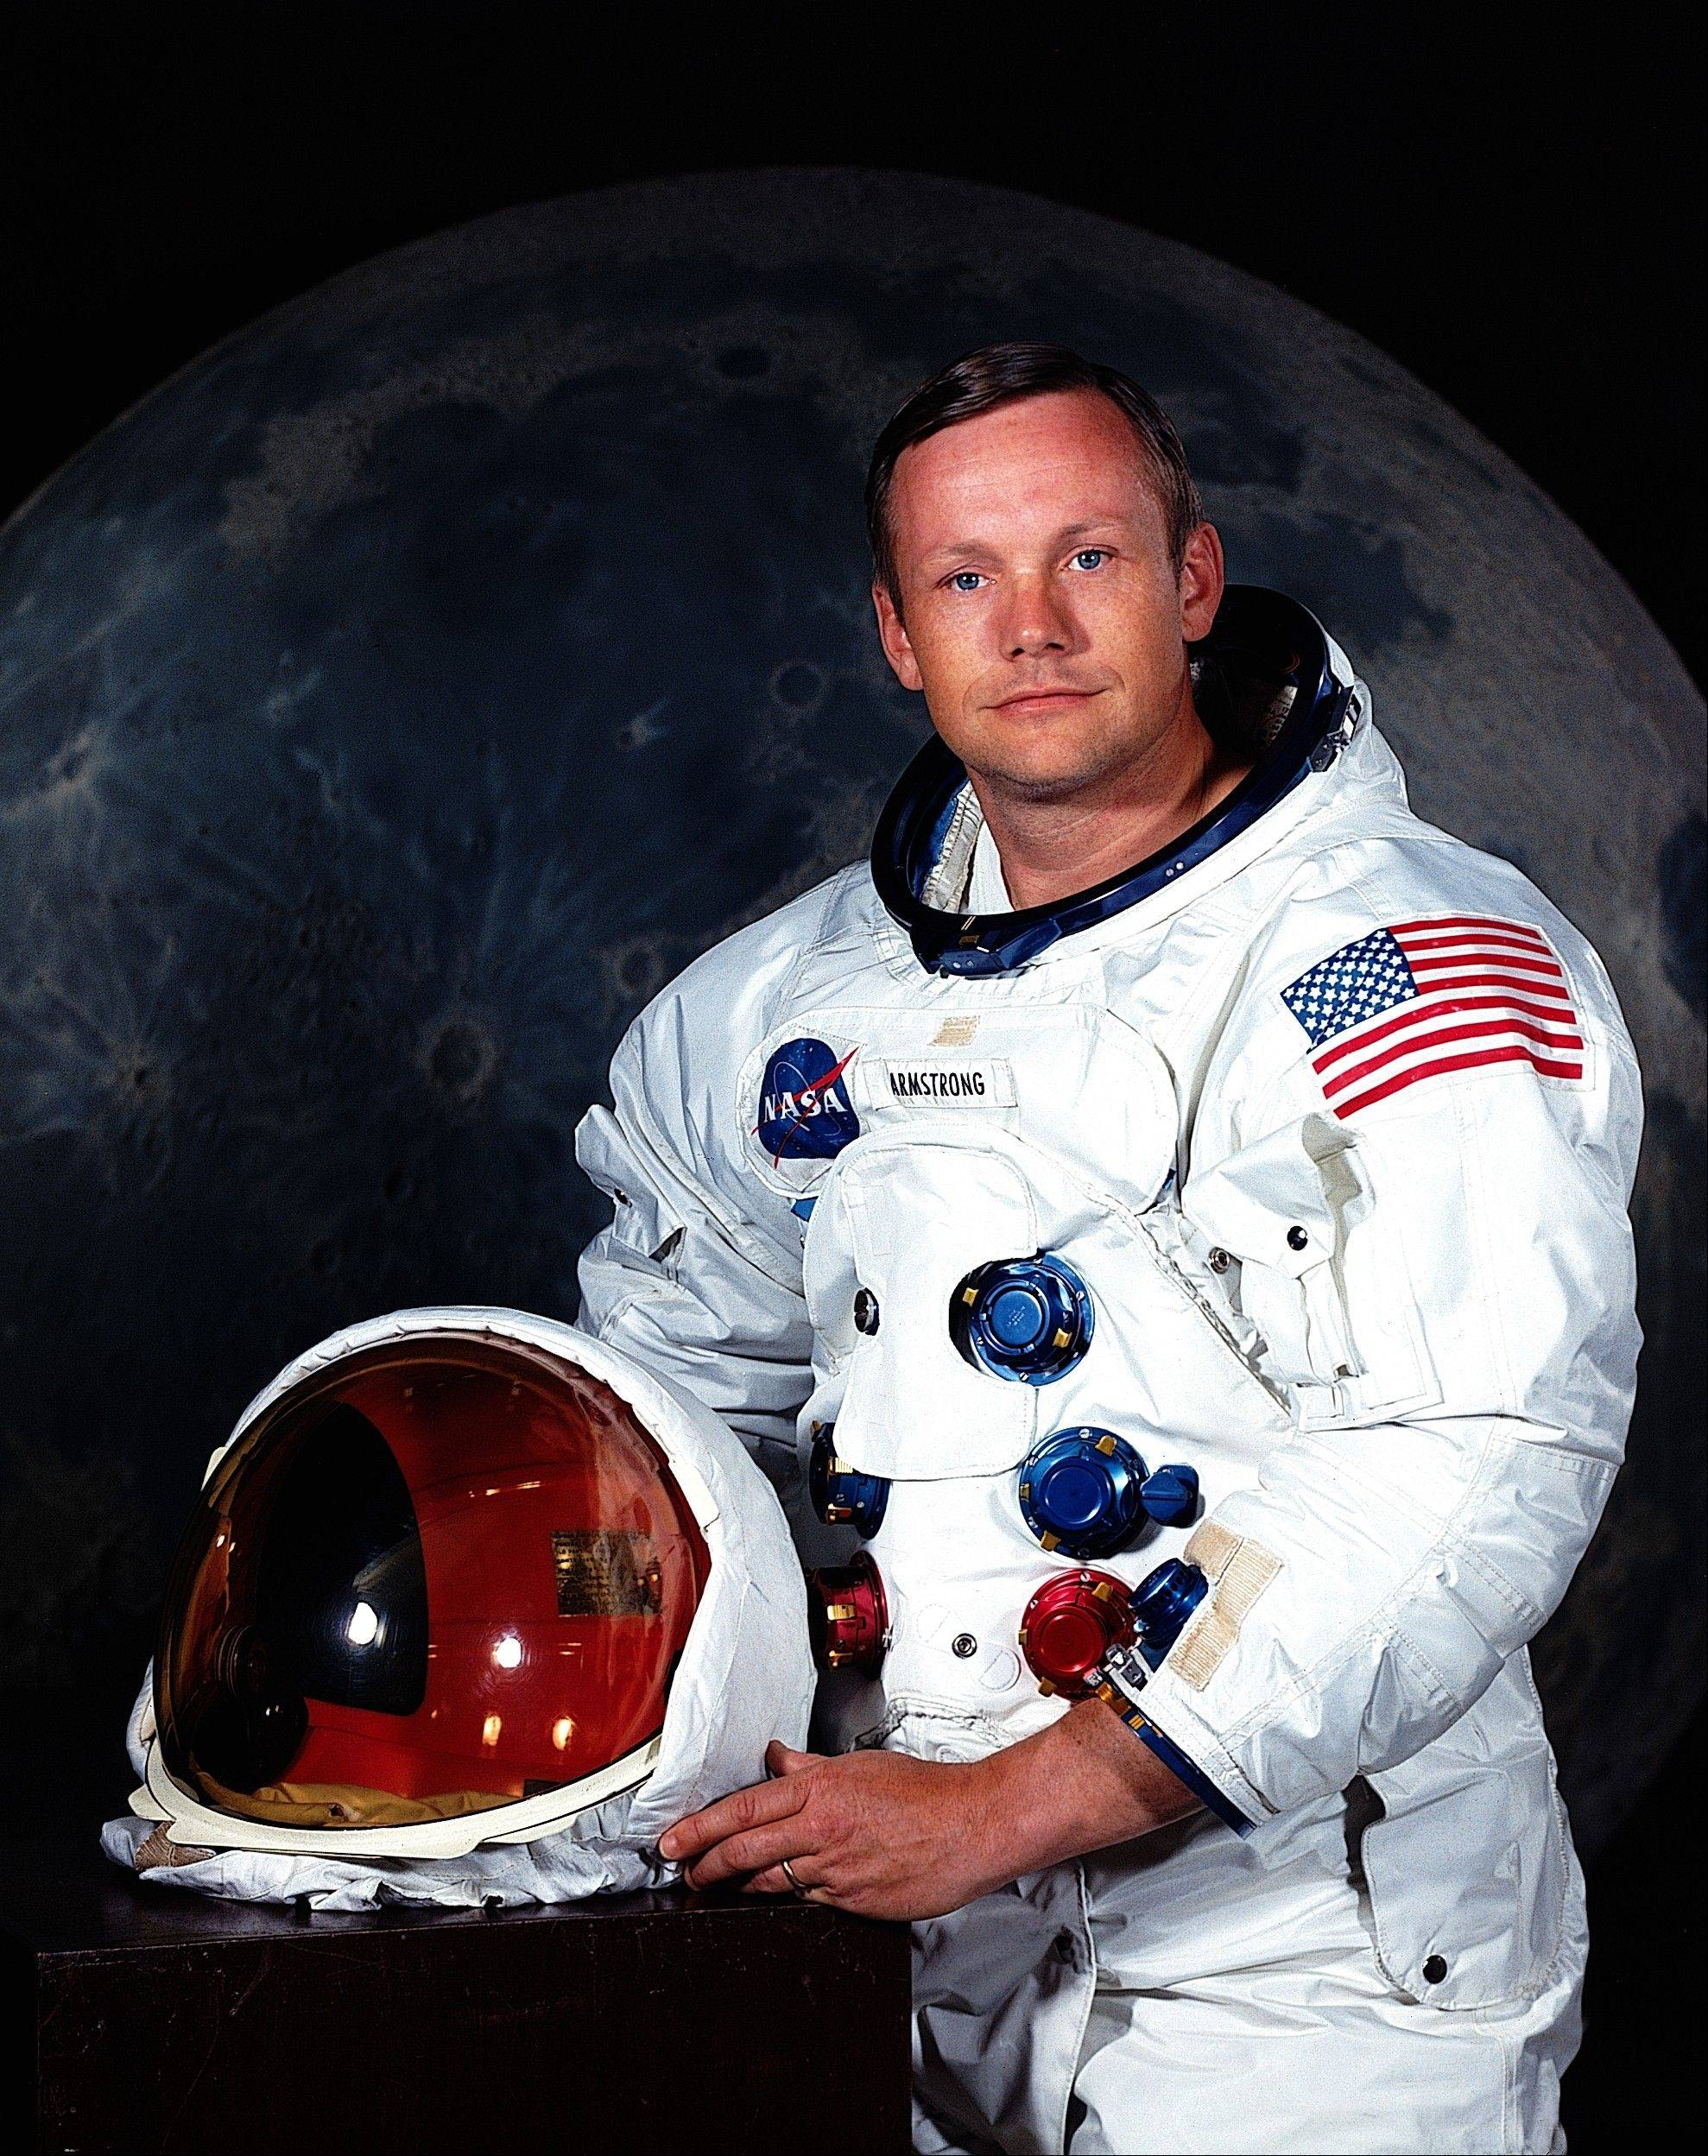 "In undated photo provided by NASA shows Neil Armstrong. The family of Neil Armstrong, the first man to walk on the moon, says he has died at age 82. A statement from the family says he died following complications resulting from cardiovascular procedures. It doesn't say where he died. Armstrong commanded the Apollo 11 spacecraft that landed on the moon July 20, 1969. He radioed back to Earth the historic news of ""one giant leap for mankind."" Armstrong and fellow astronaut Edwin ""Buzz"" Aldrin spent nearly three hours walking on the moon, collecting samples, conducting experiments and taking photographs. In all, 12 Americans walked on the moon from 1969 to 1972."